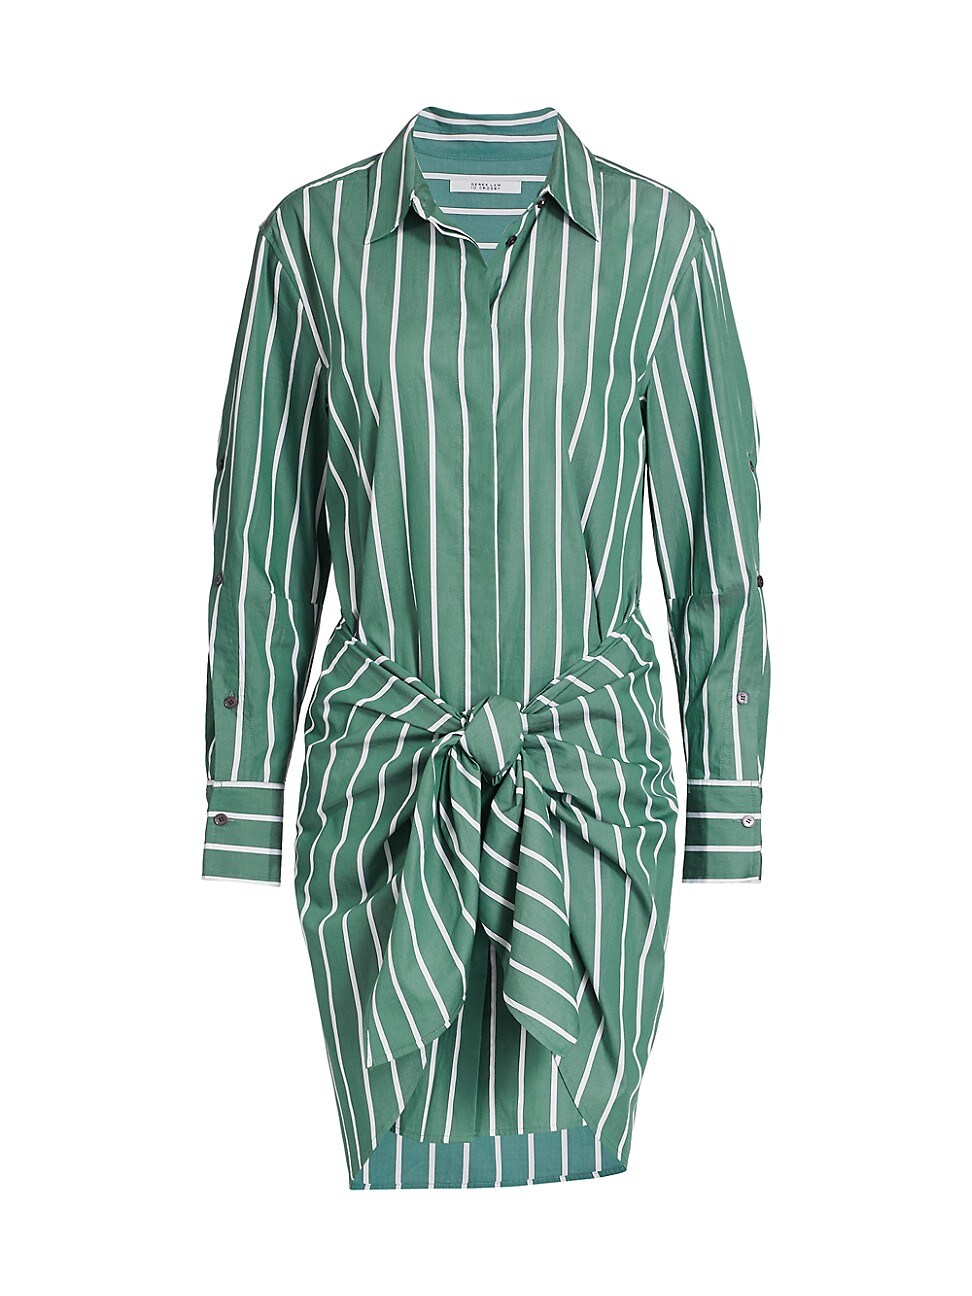 Derek Lam 10 Crosby WOMEN'S CHARLOTTE TIE-WAIST STRIPE SHIRTDRESS